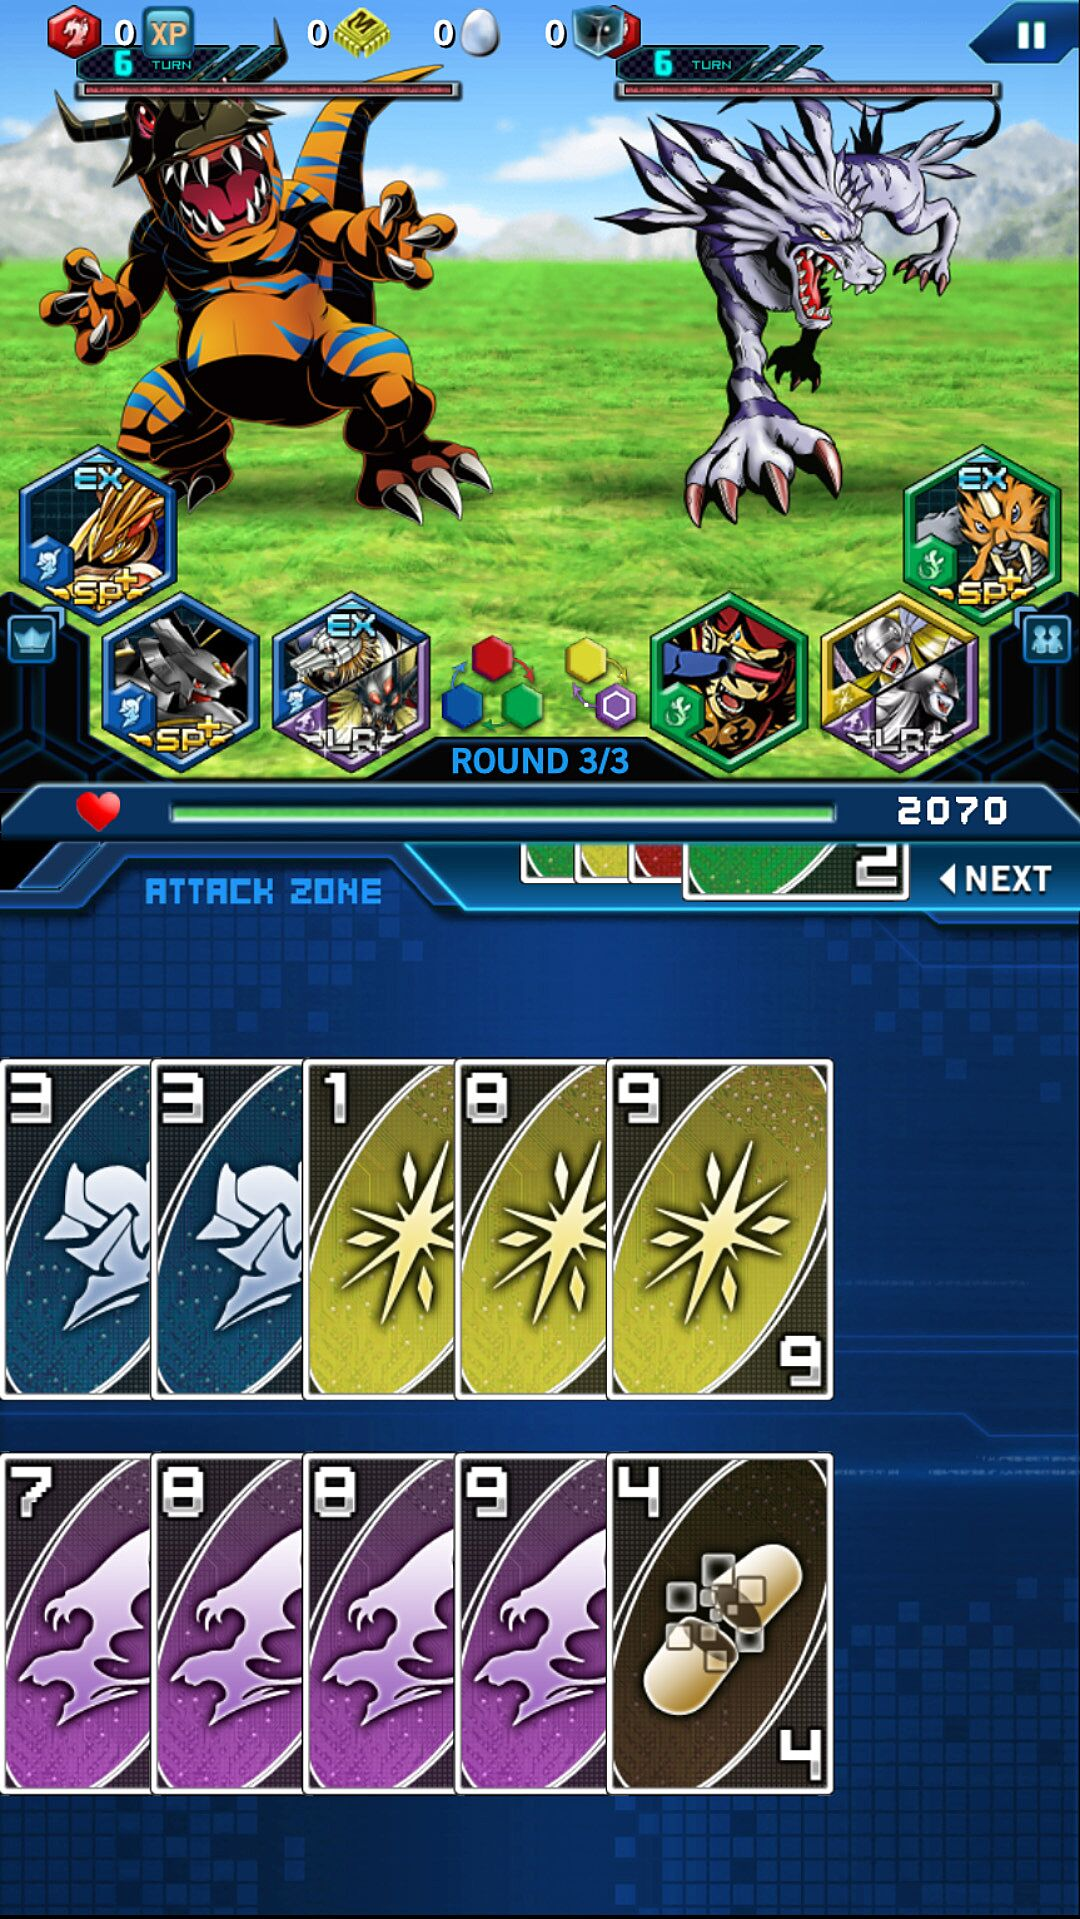 Digimon Heroes! Match-3 Card Battler Now Live On Mobile